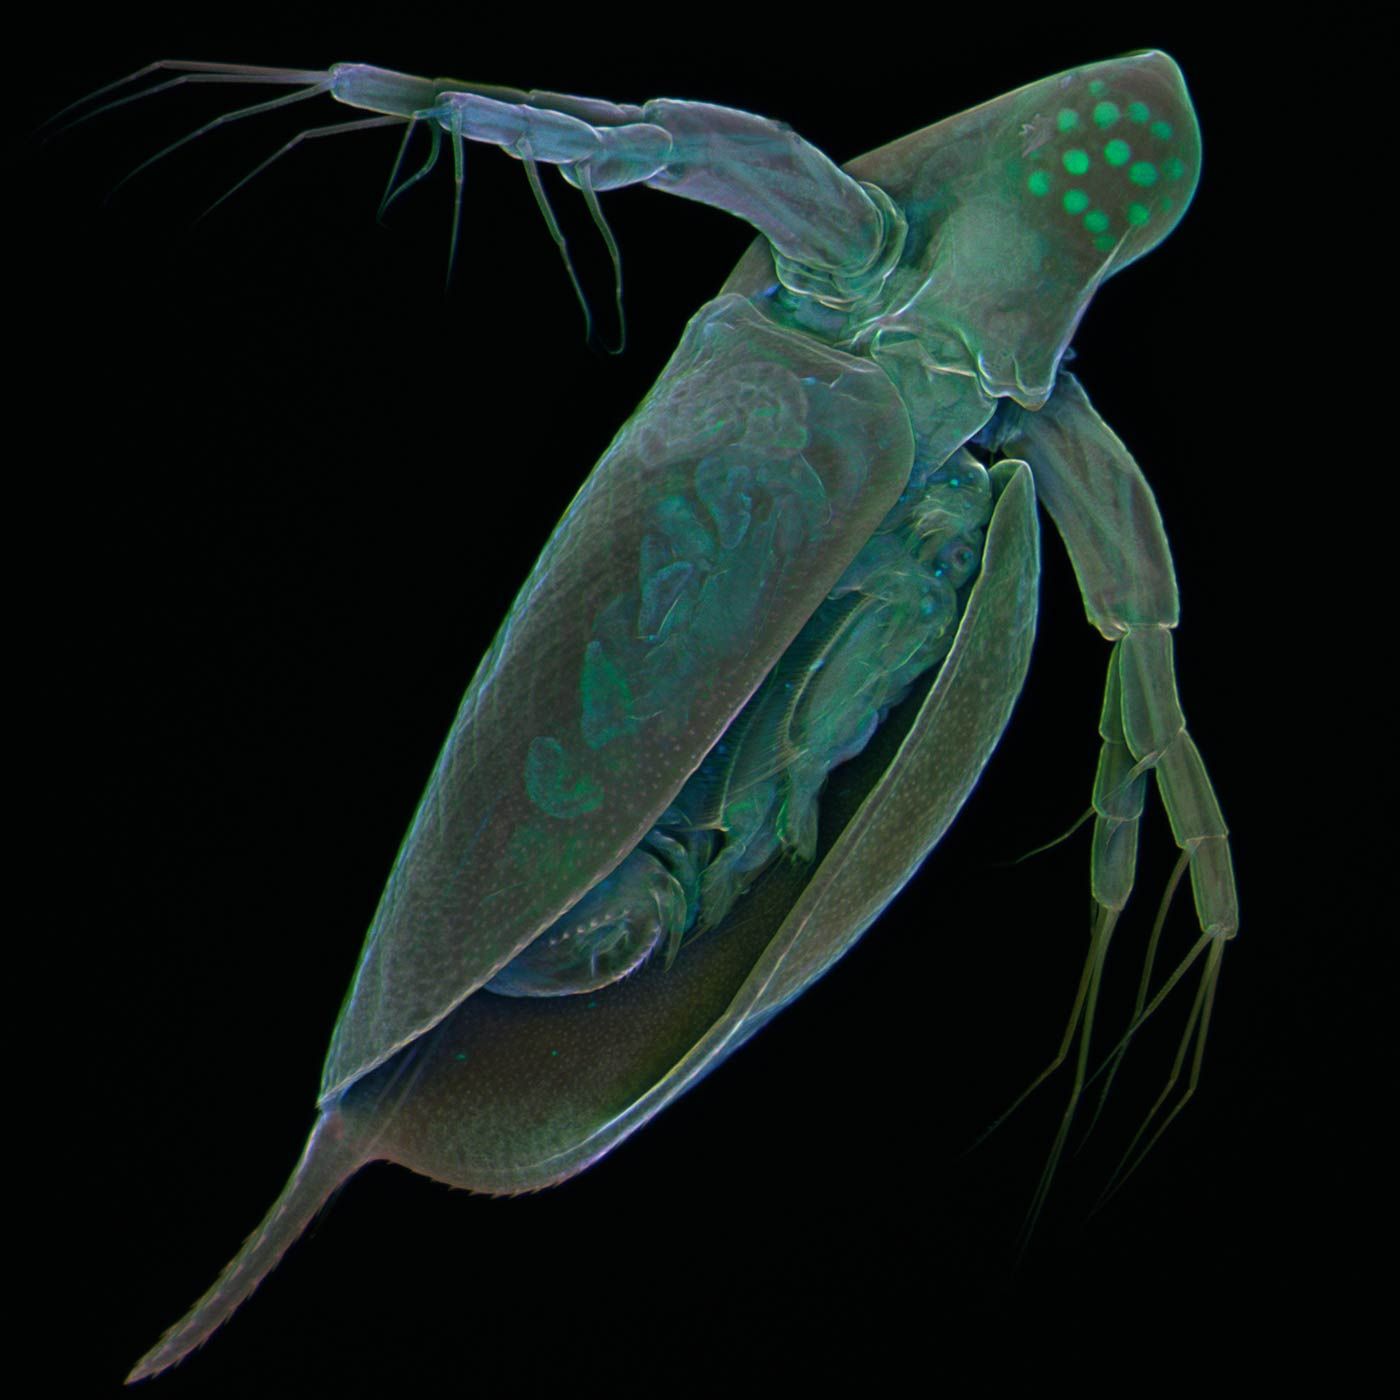 The freshwater crustacean Daphnia